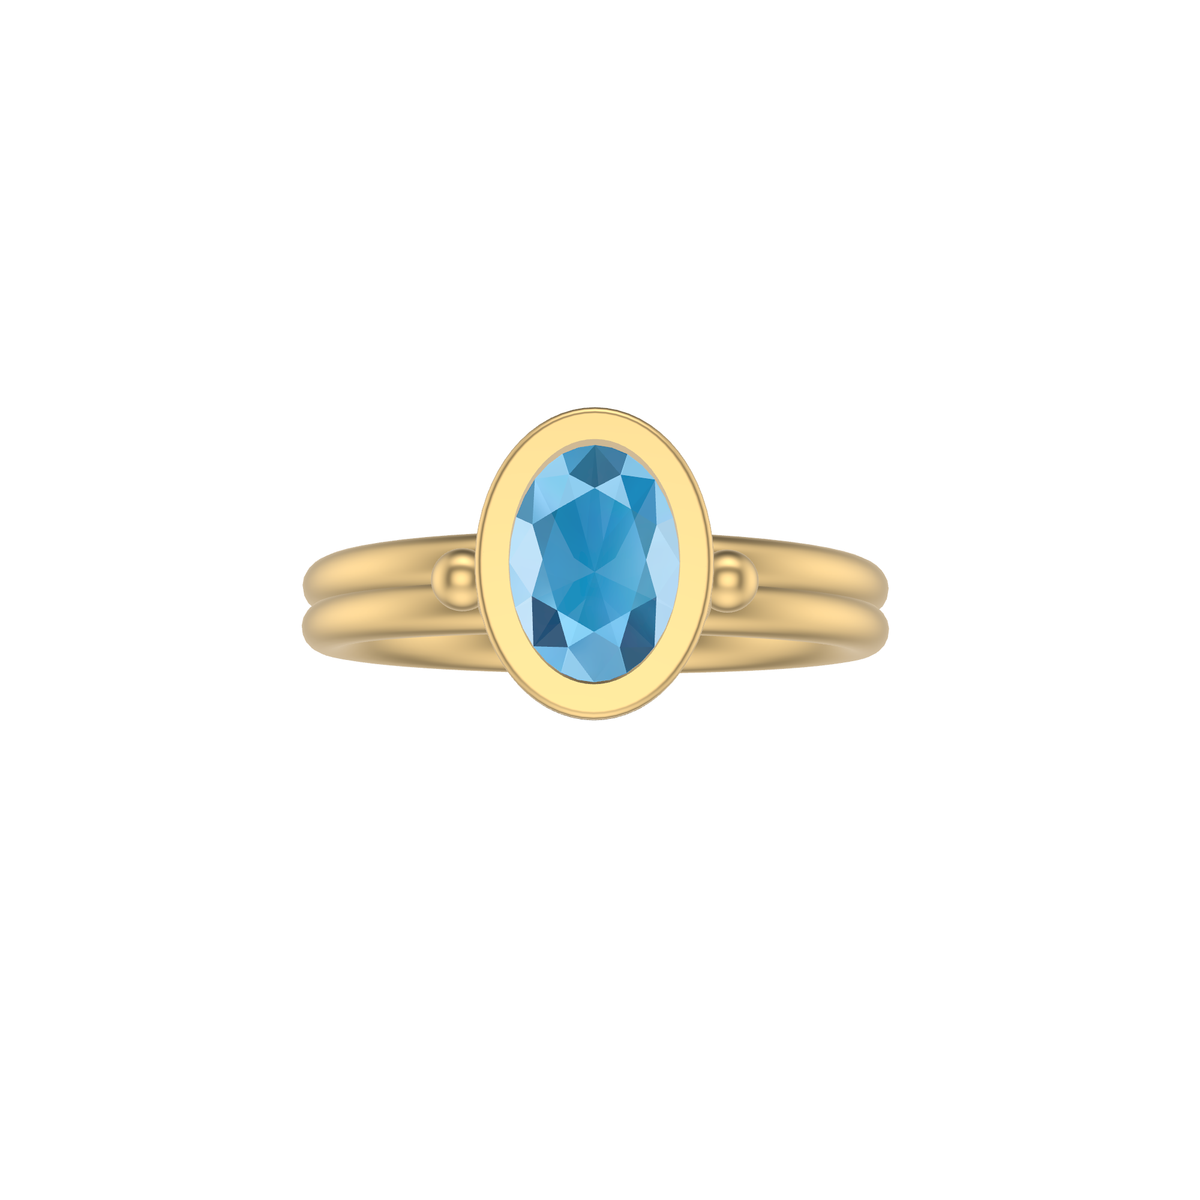 Ruby Long Oval Sea Shore Shaped Stacker | 9ct Gold Stacking Ring | Blue Topaz Or Blue Zircon